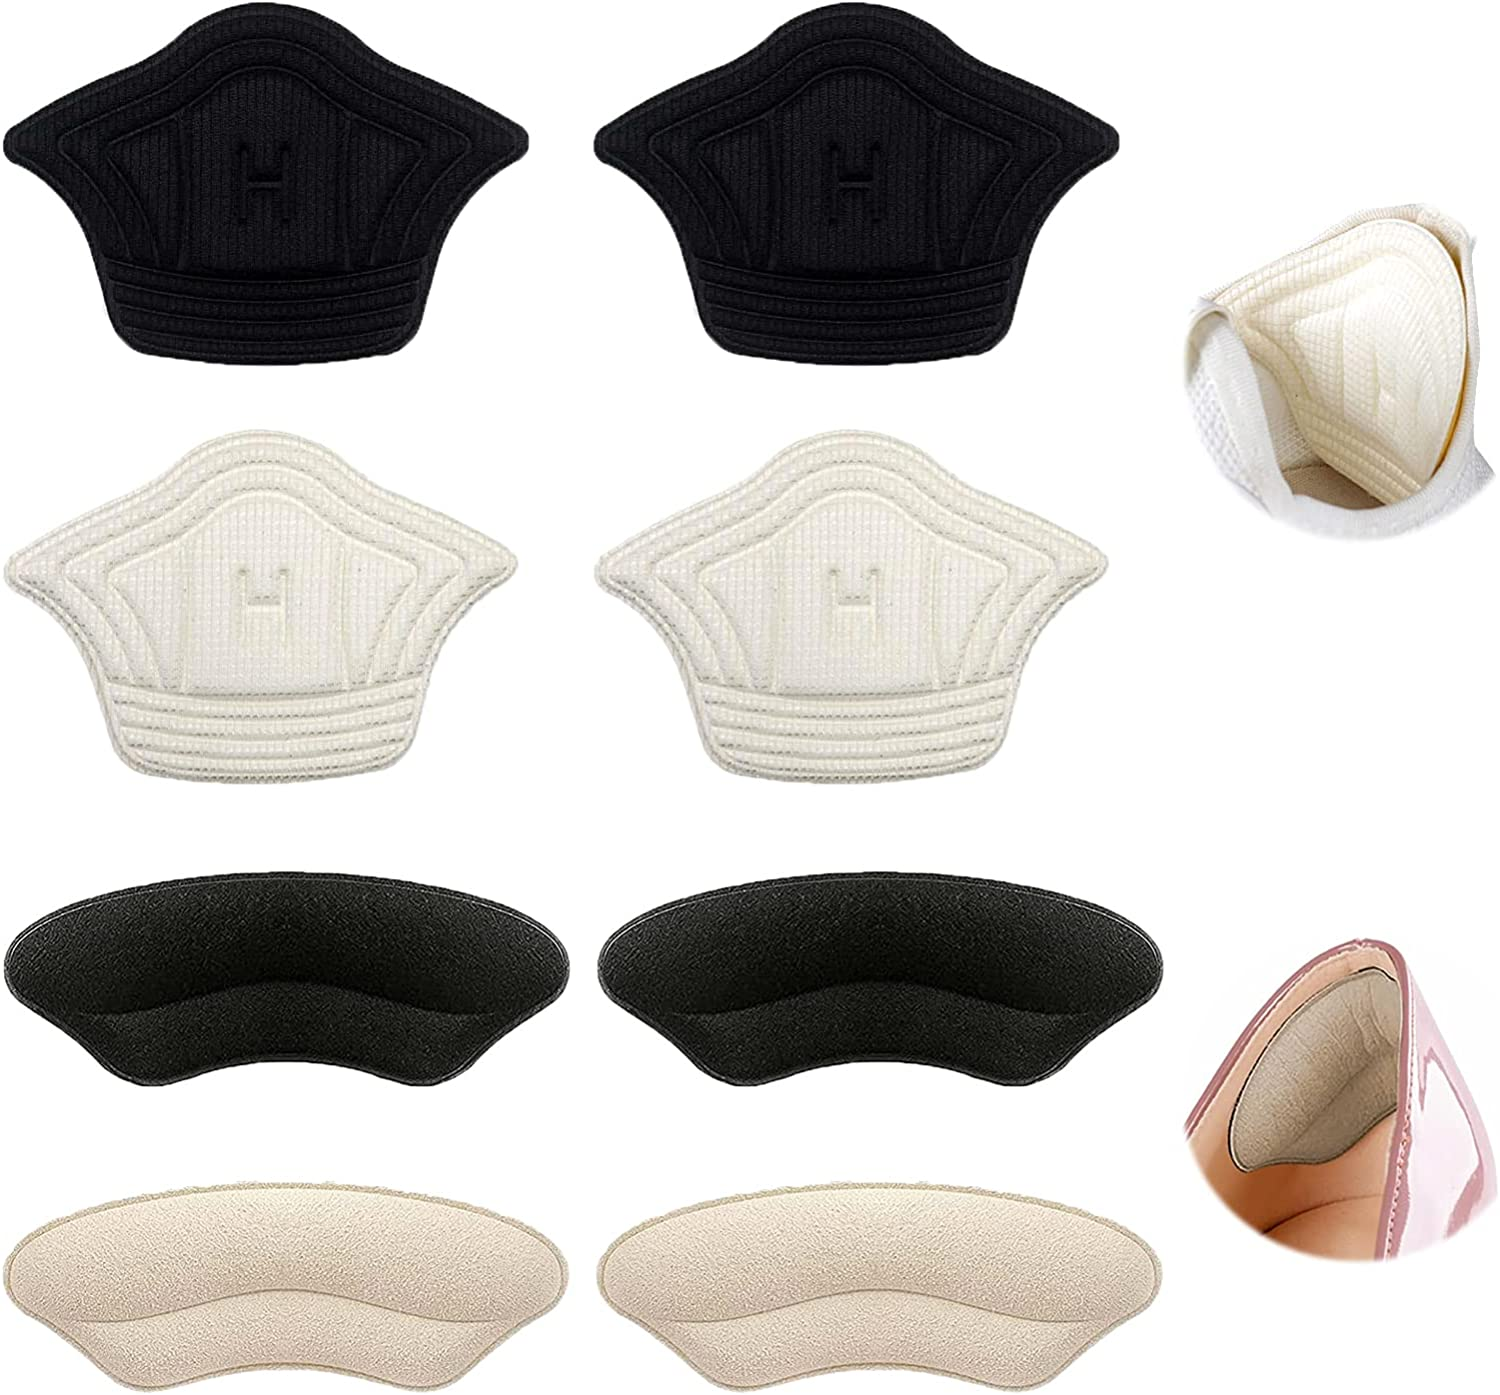 Heel Grips Liner Inserts 8 f Selling rankings PCS Soft Cushion Super beauty product restock quality top Pads